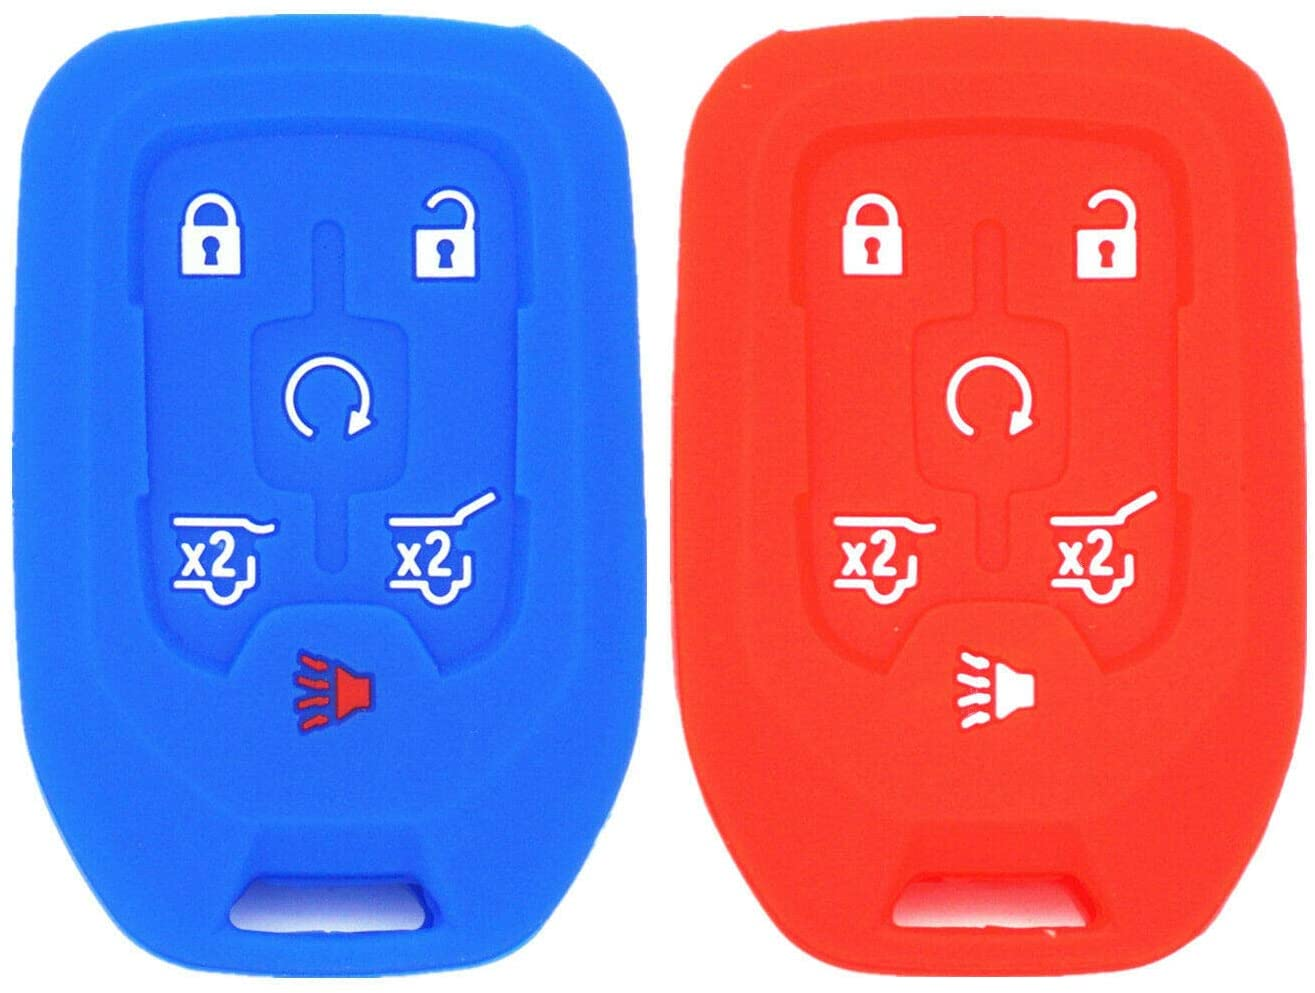 Remote Entry System Kits 2Pcs Blue Red Silicone 4 Buttons Key Cover Chain for GMC Yukon Chevrolet Tahoe